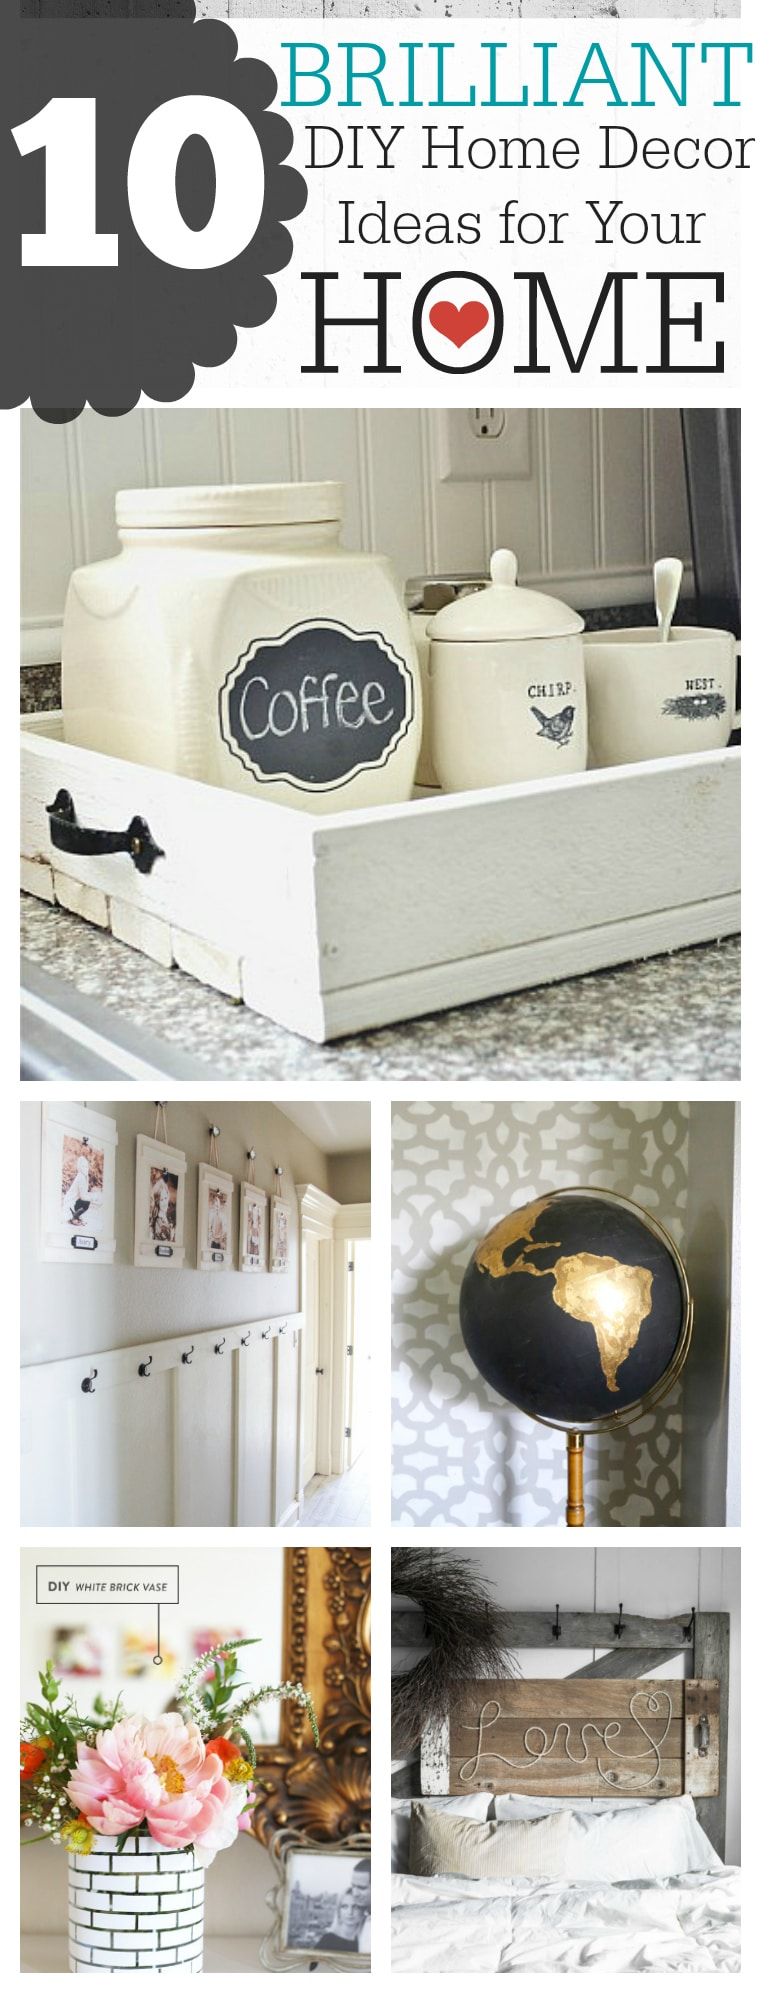 10 Brilliant DIY Home Decor Ideas To Makeover Your Home!